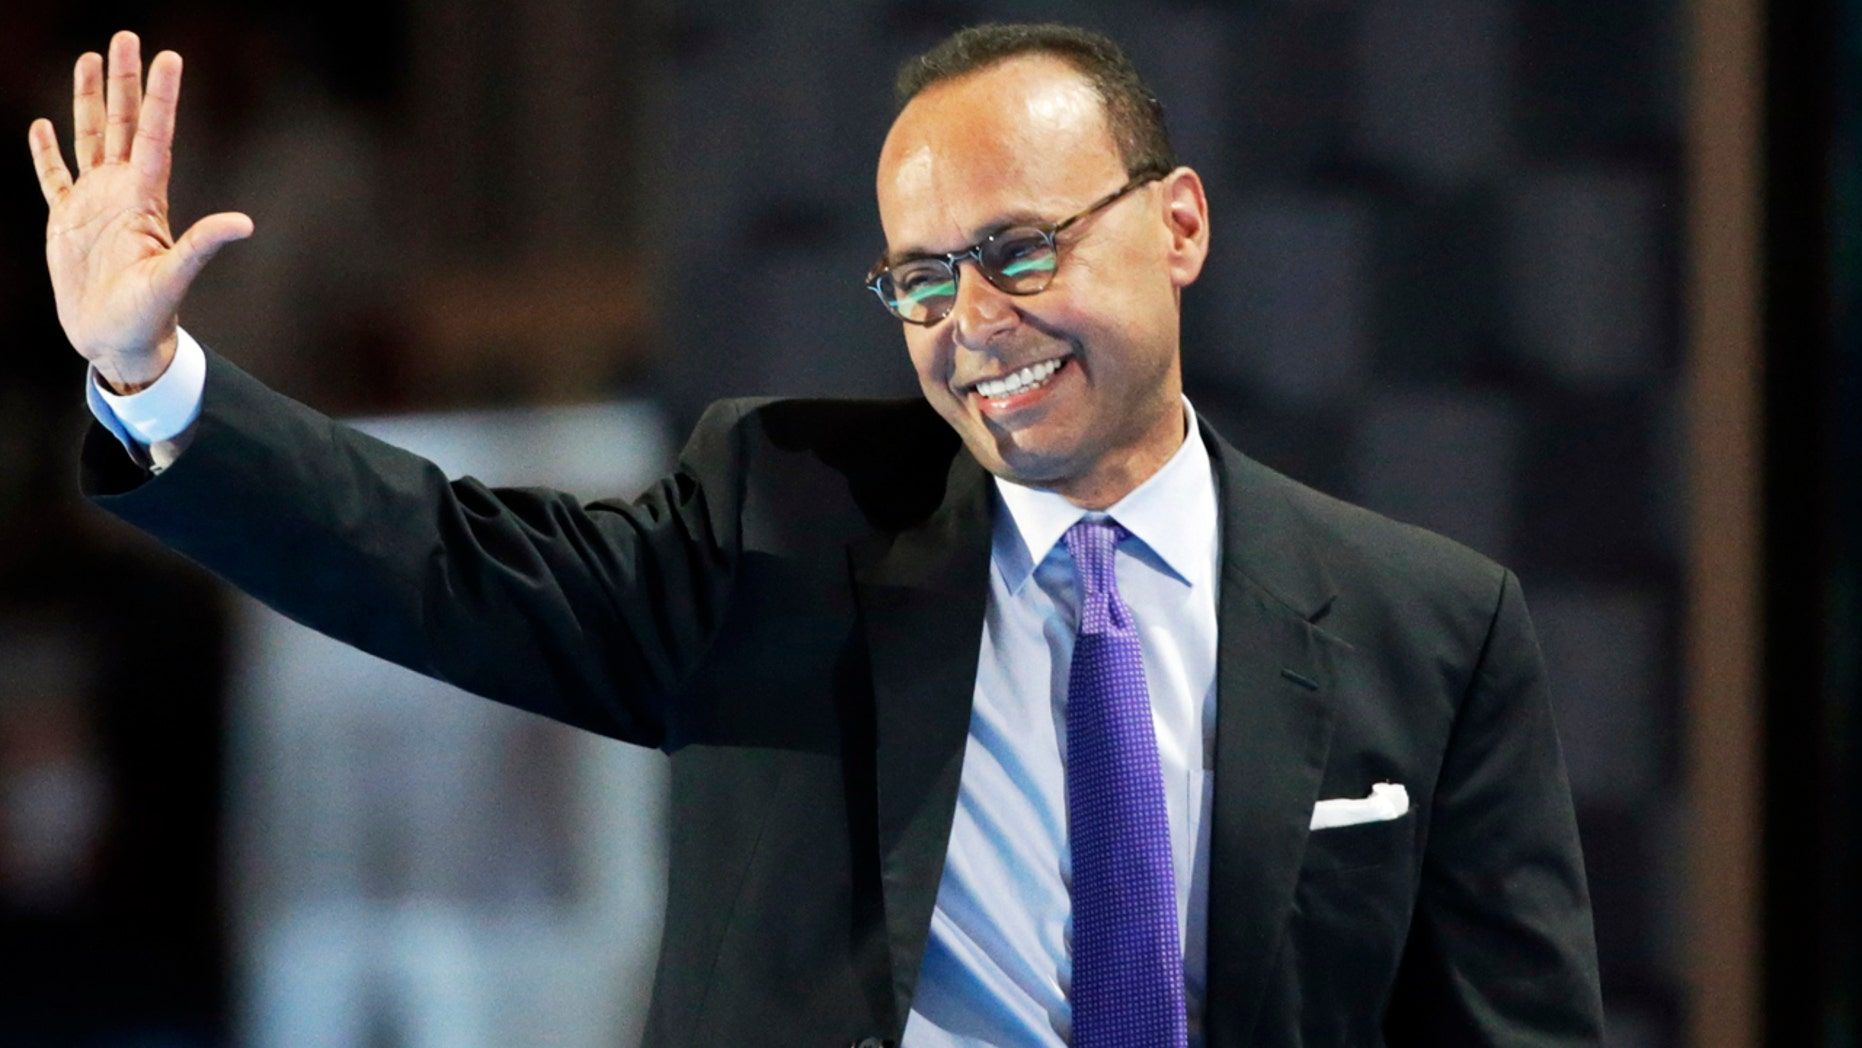 U.S. Rep. Luis Gutierrez, R-Ill, waves after speaking at the Democratic National Convention in Philadelphia in July 2016..